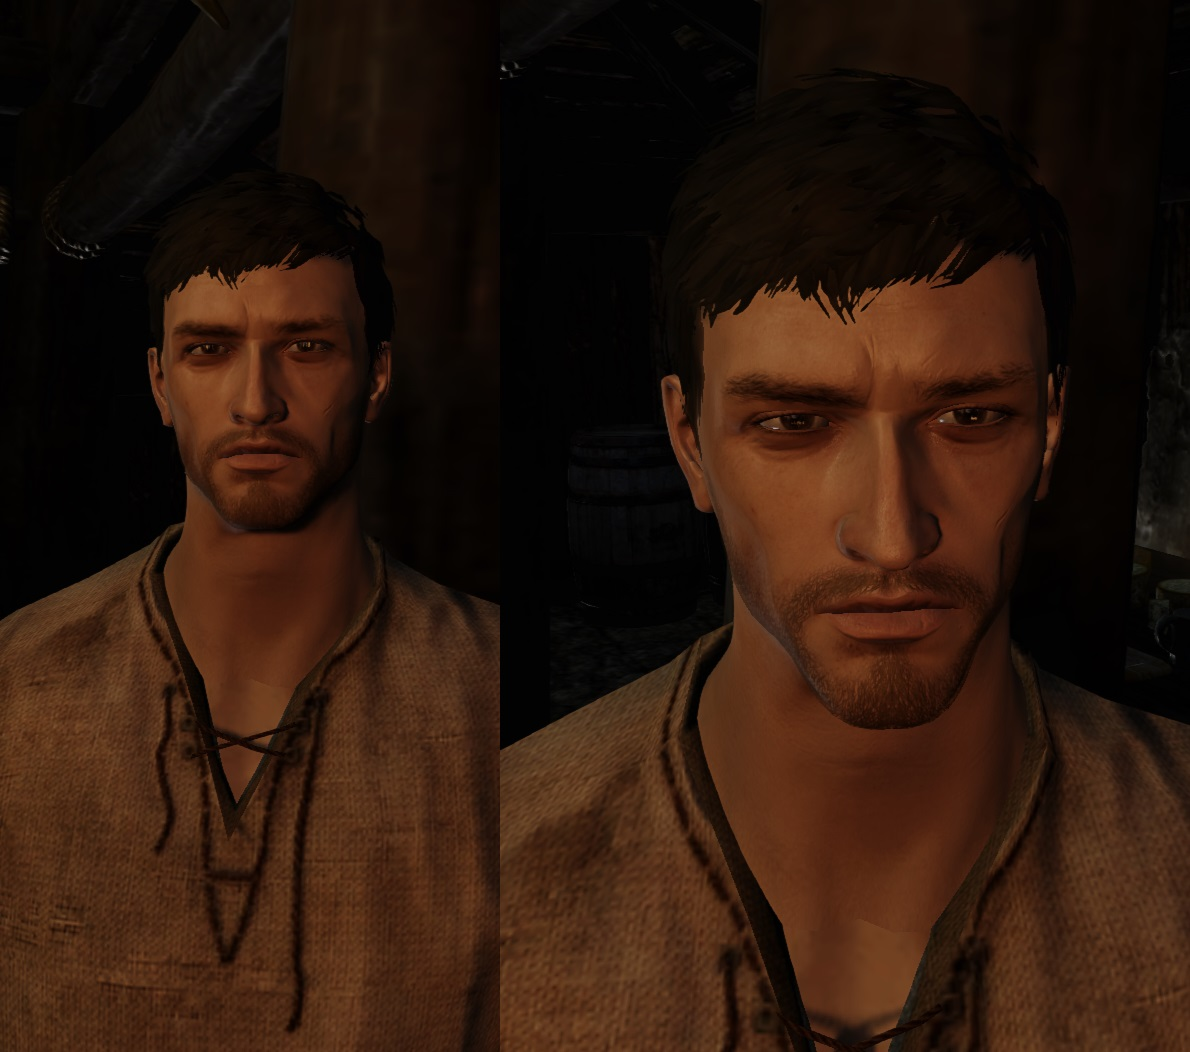 COtR with Alistair Normal Map head textures